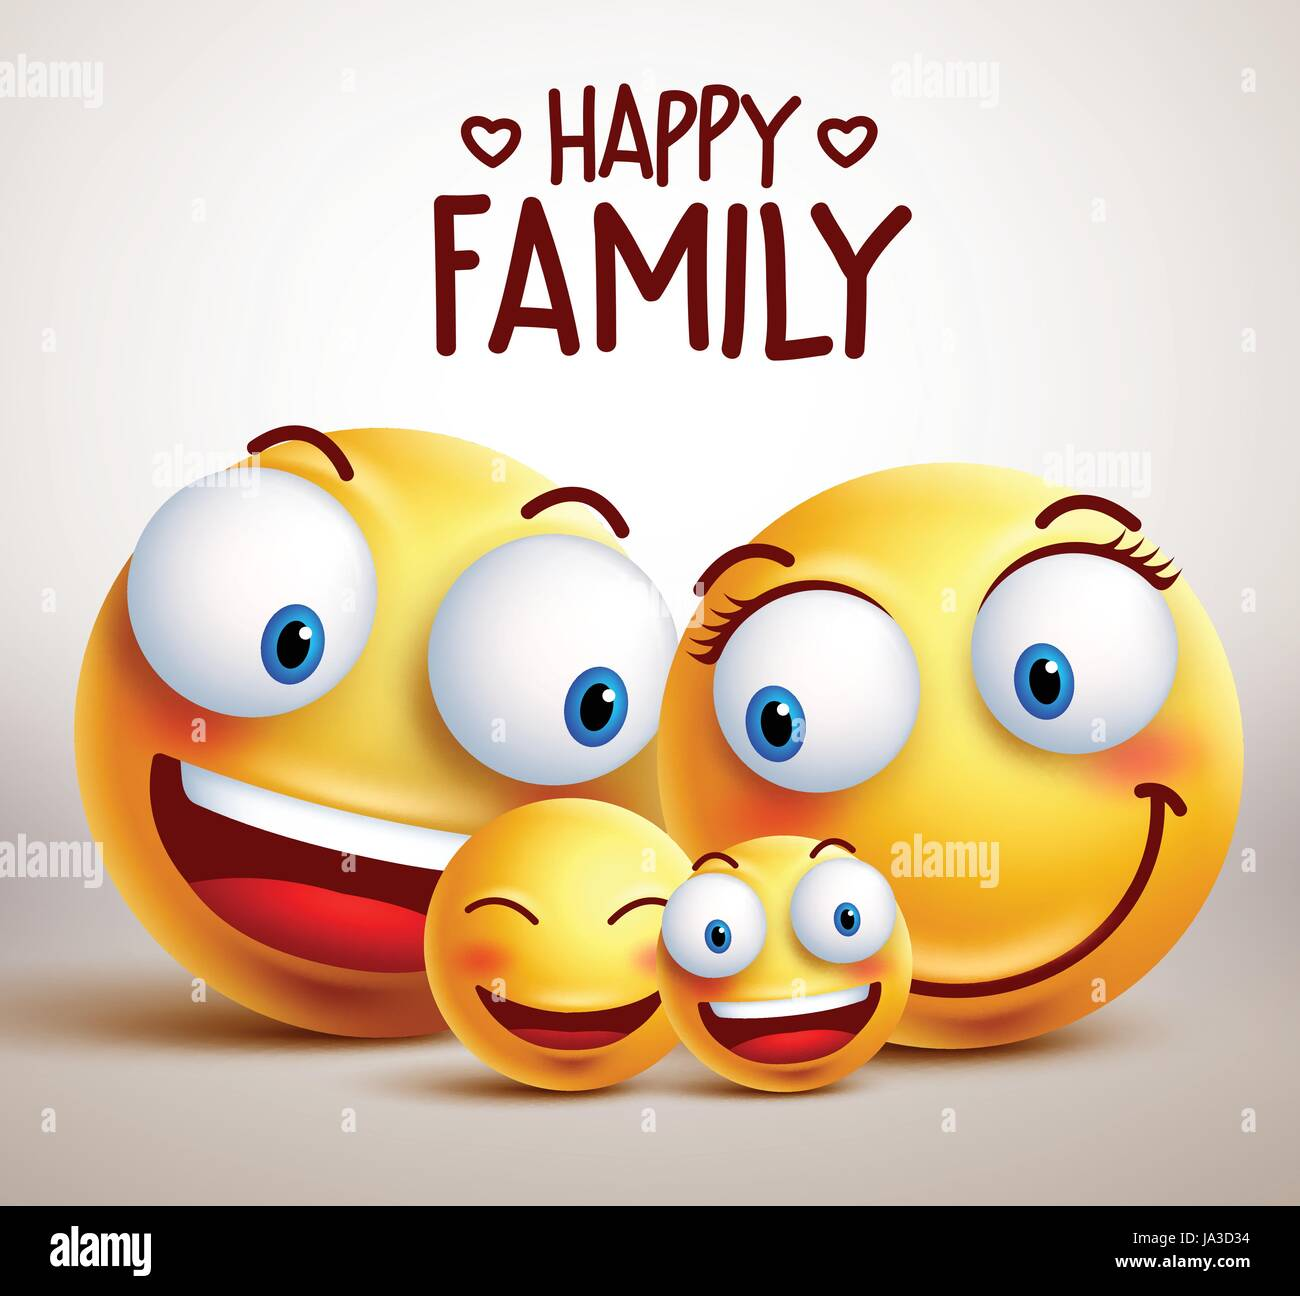 Happy family smiley face vector characters with father